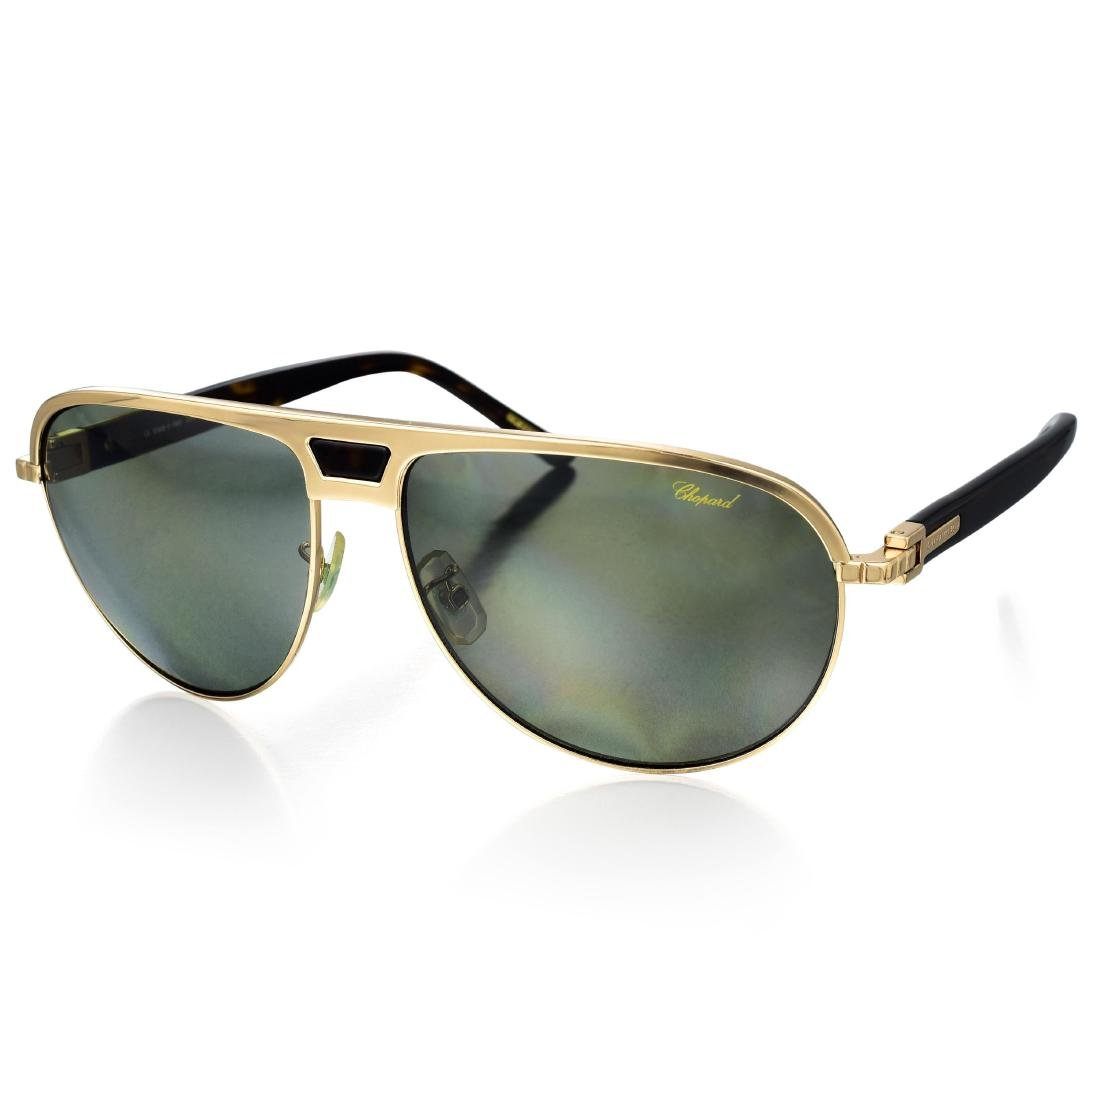 Chopard Sunglasses - 2